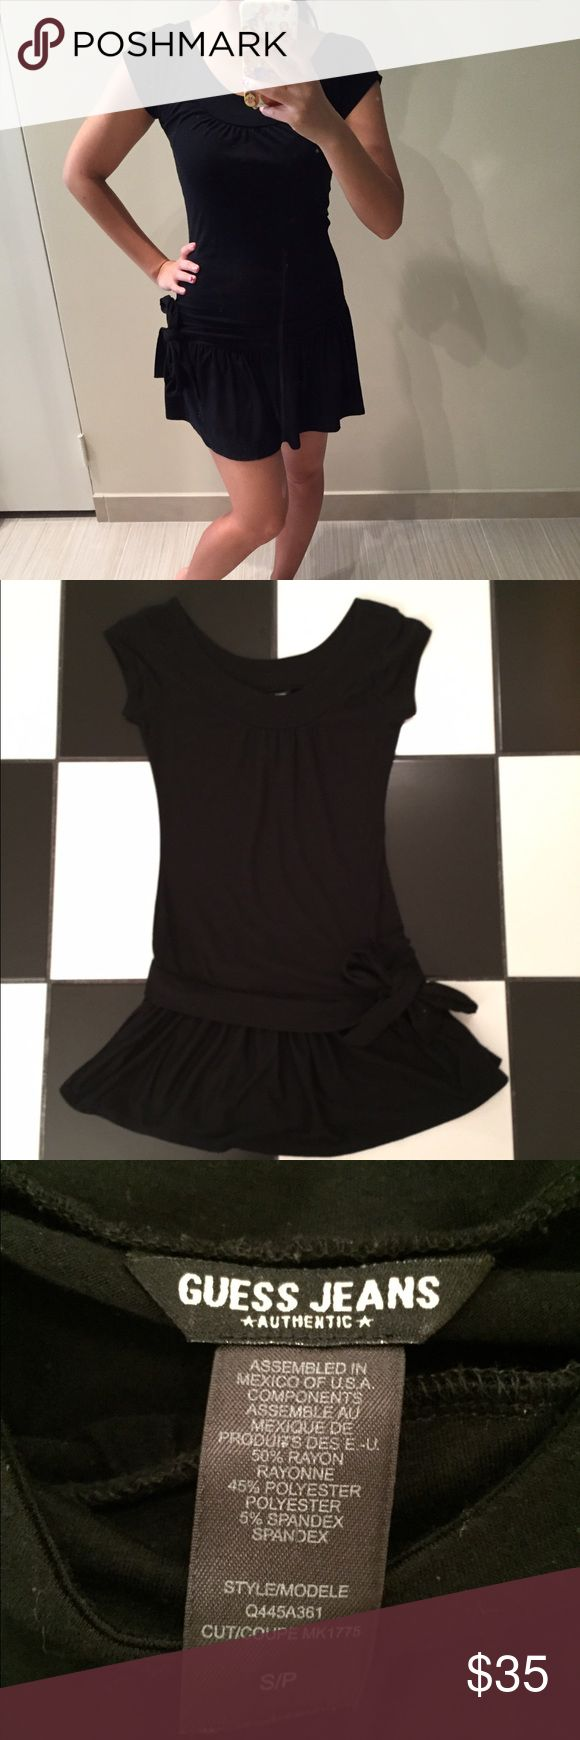 Black Guess dress with bow Black Guess dress with bow. Gently used in good condition. Please use offer button and ask all questions before purchasing. No trades. Guess Dresses Mini